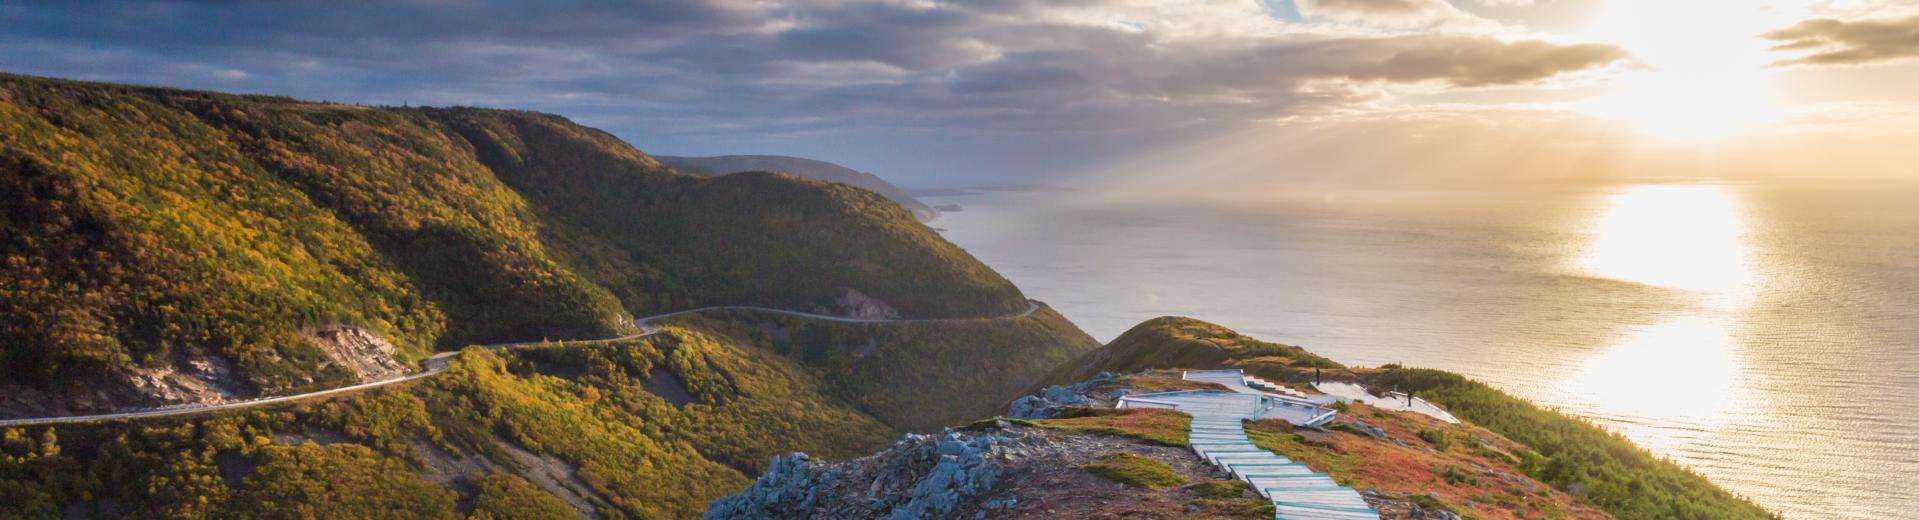 Skyline Trail in the Cape Breton Highlands National Park